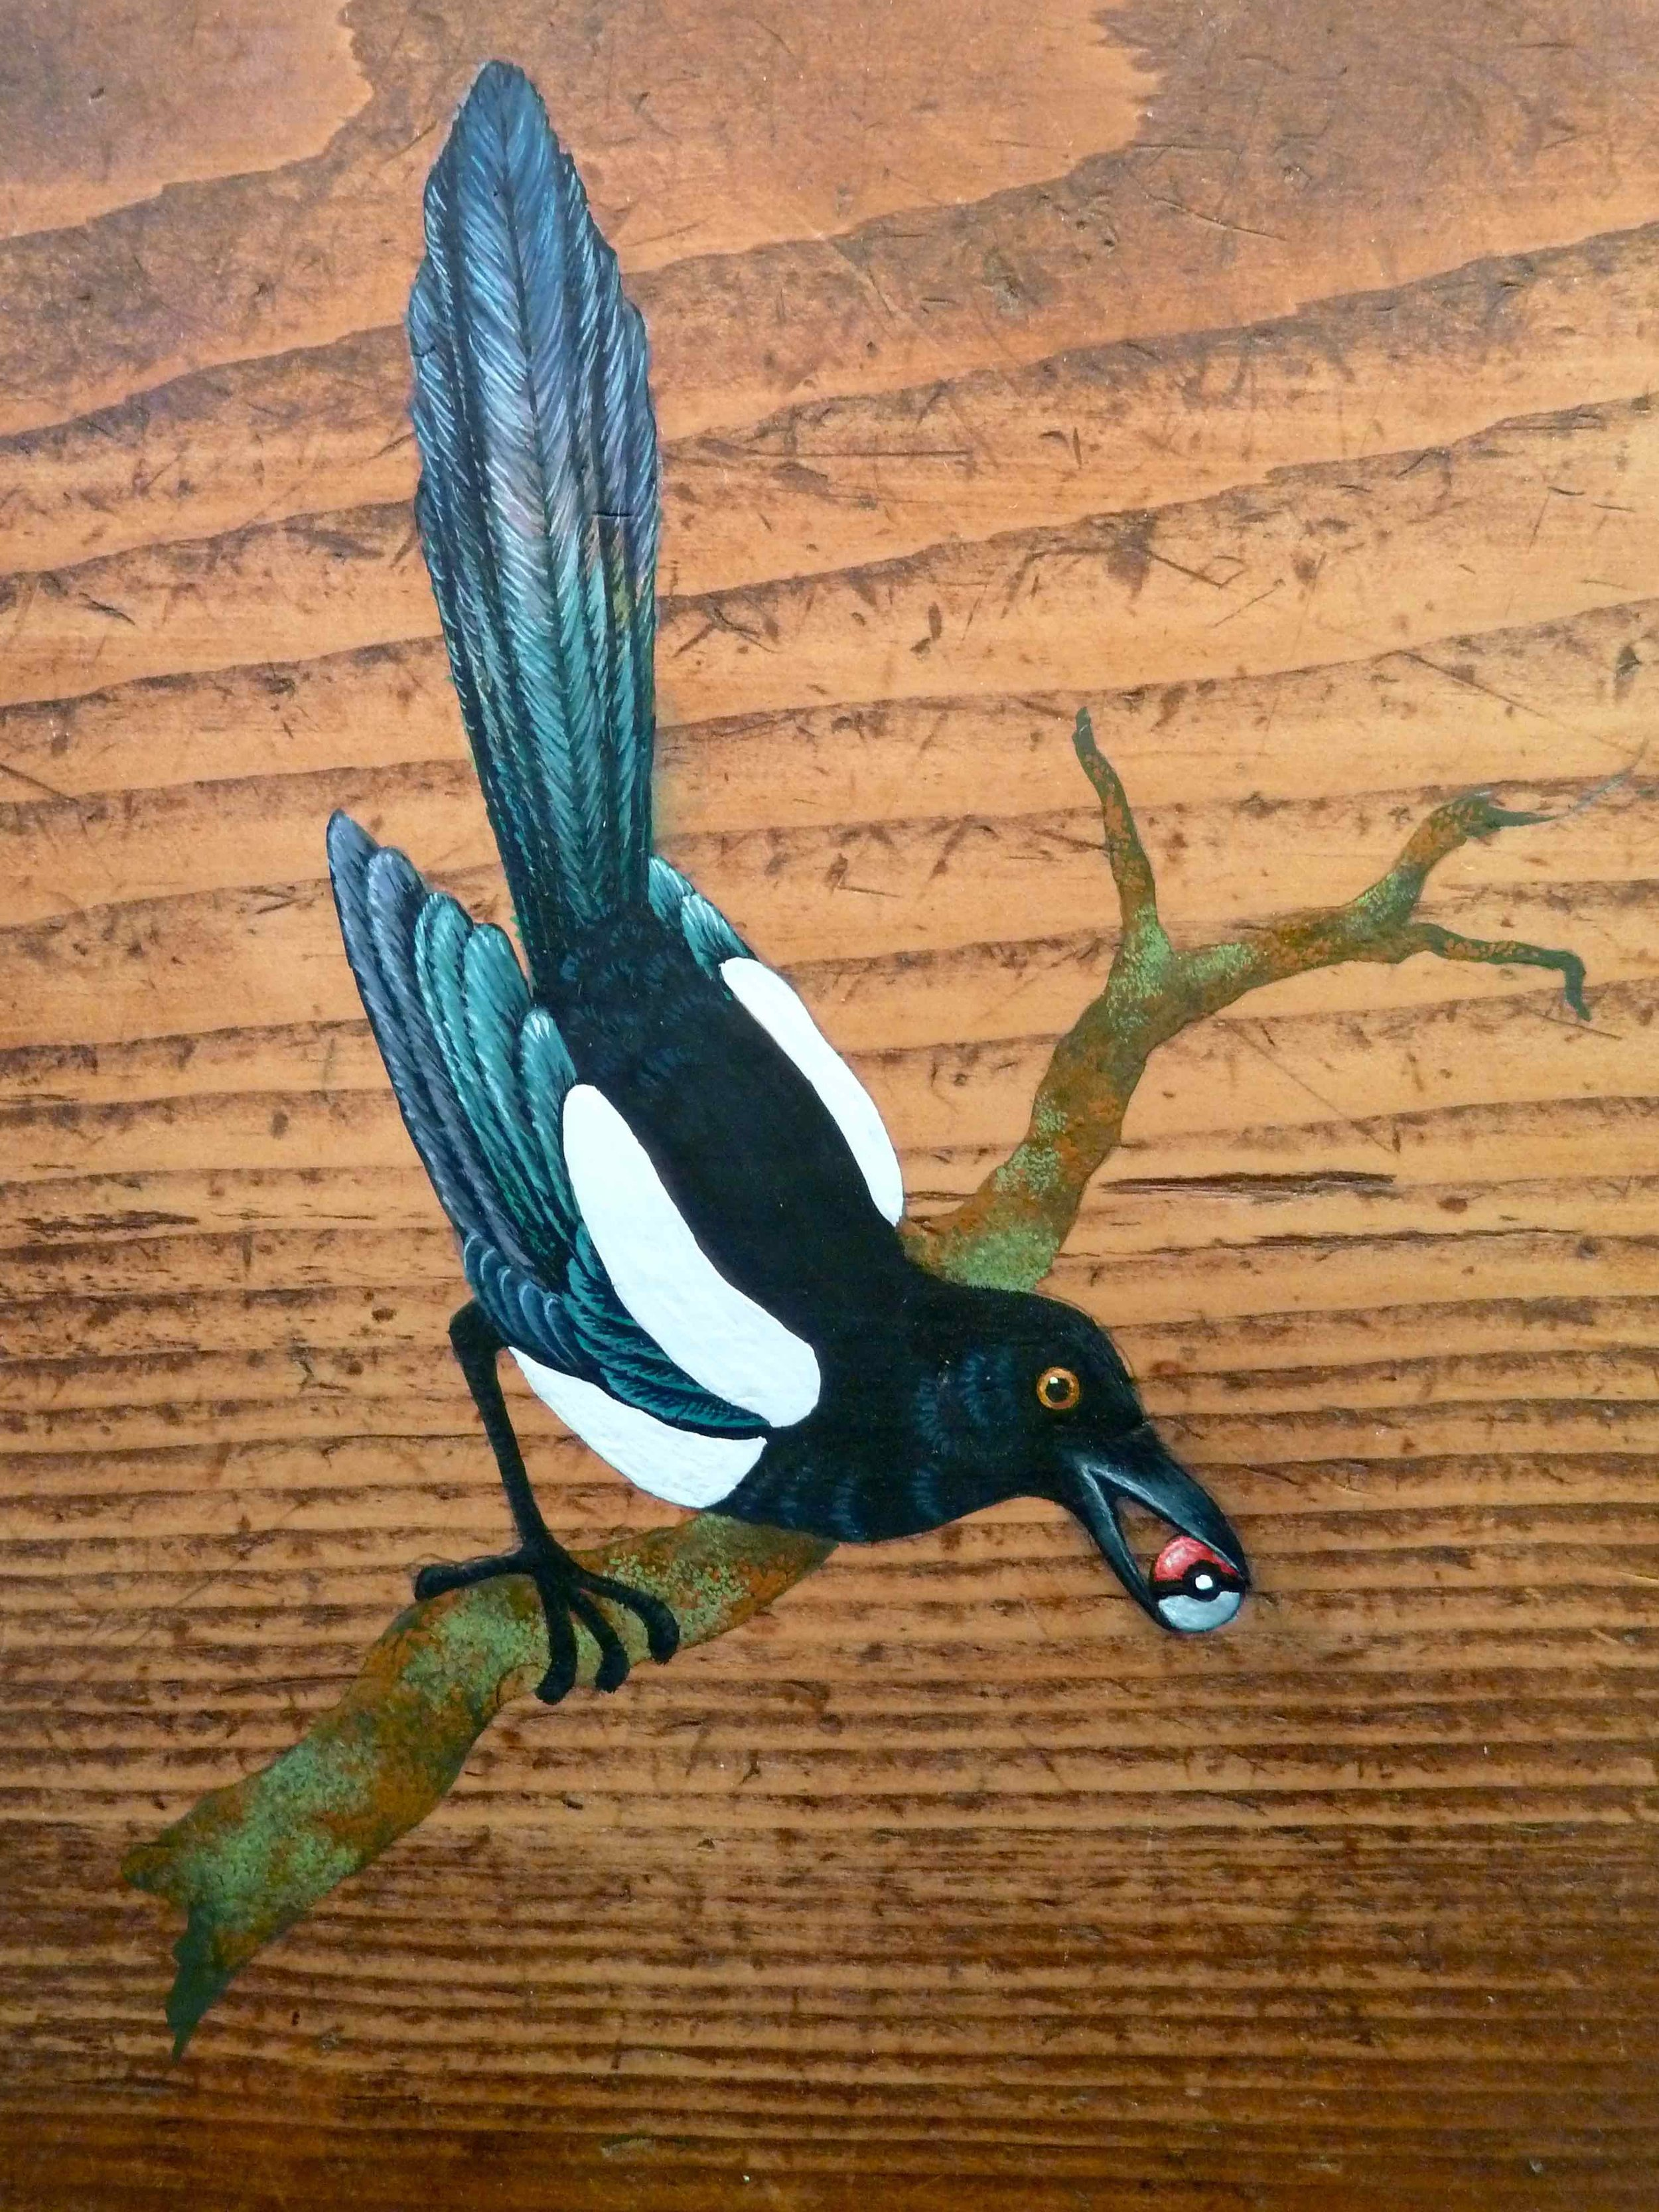 Magpie  Pica pica  (gouache on wood),2010.  Something tells me it's all happening at the Zoo  , Kevin Kavanagh Gallery